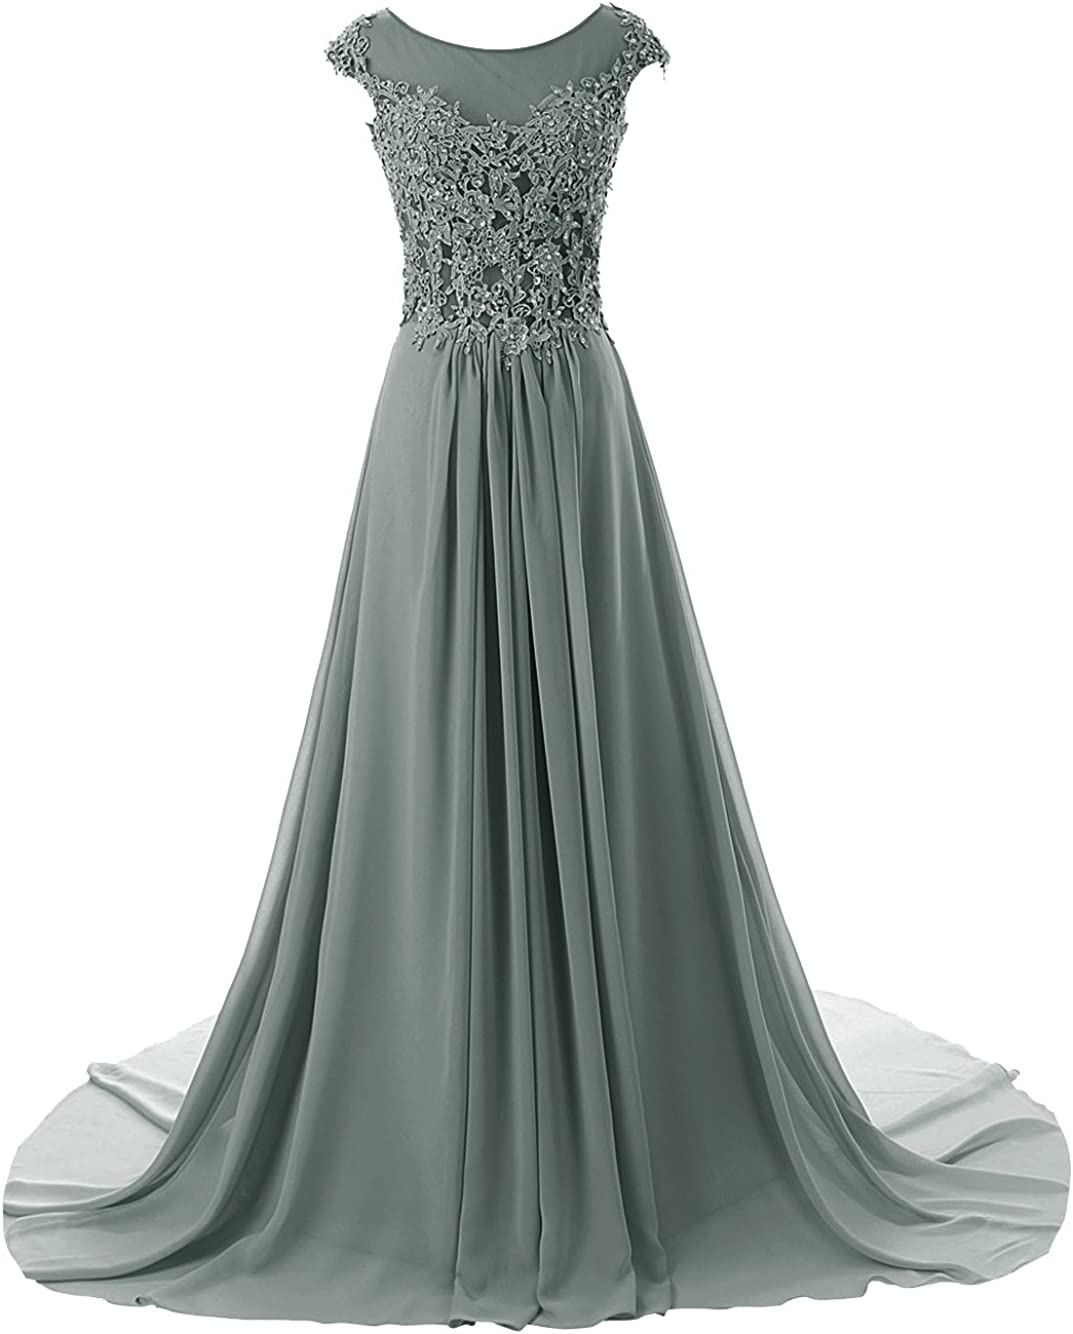 Prom Dress Long Formal Evening Gowns Lace Bridesmaid Dress Chiffon Prom Dresses Applique